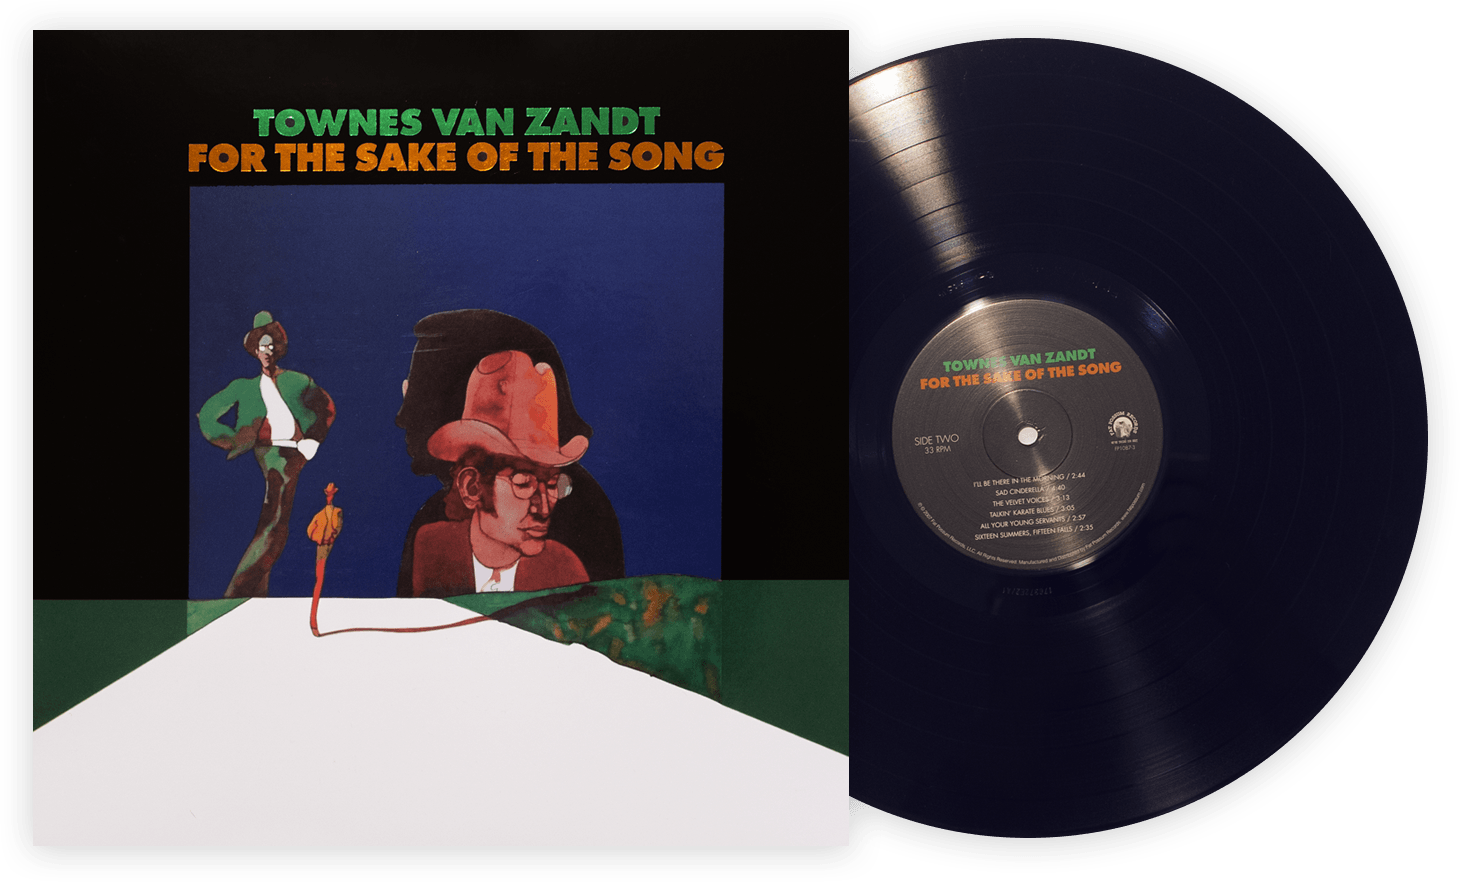 Townes Van Zandt-50th anniversary 'For The Sake Of The Song